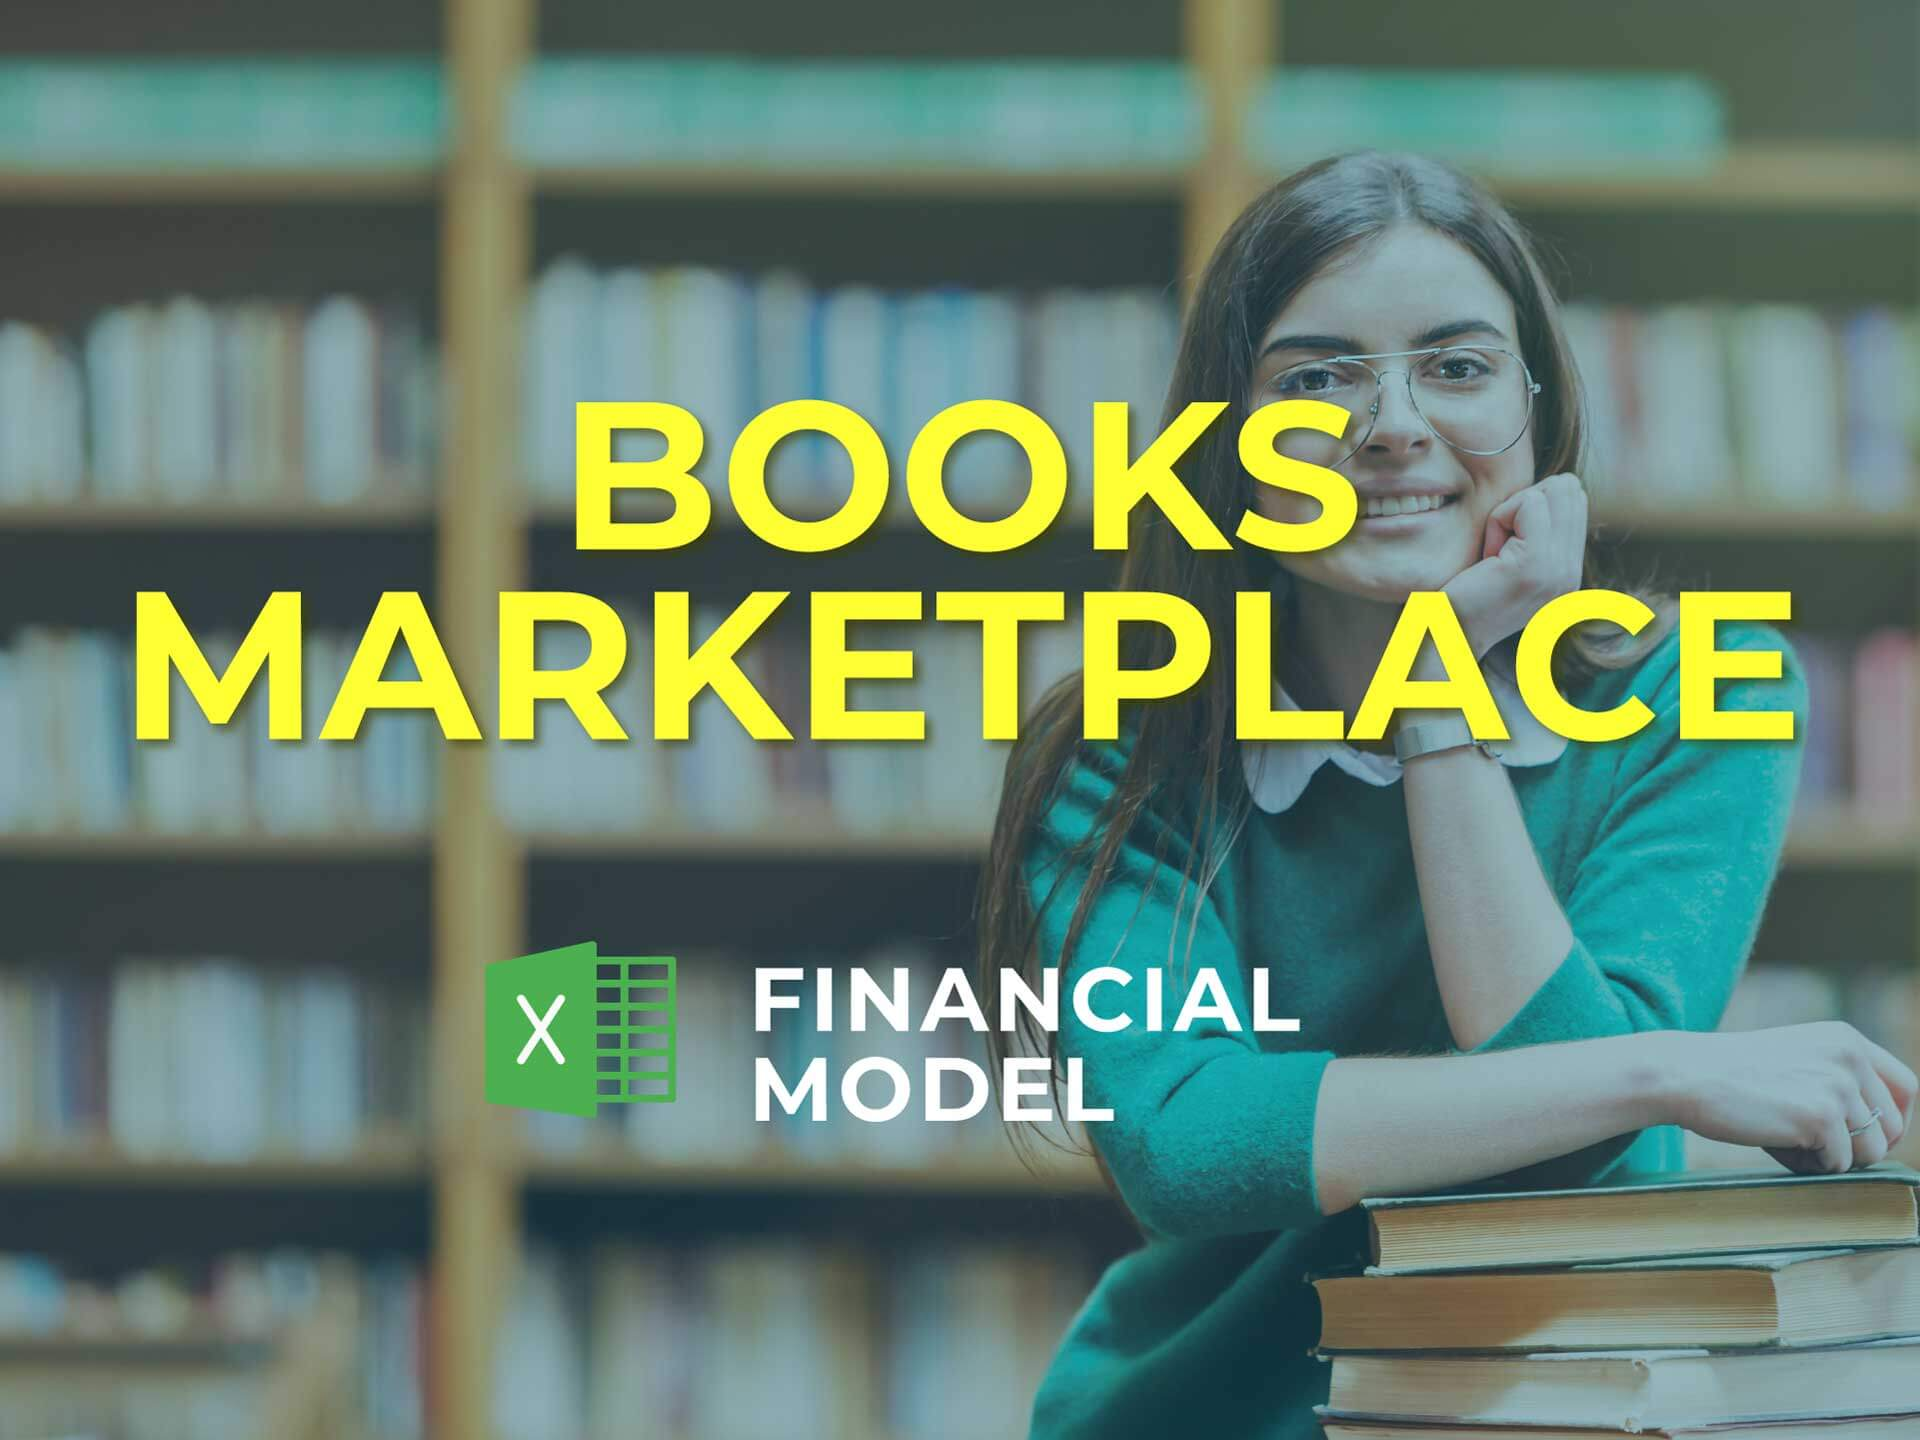 Books Marketplace